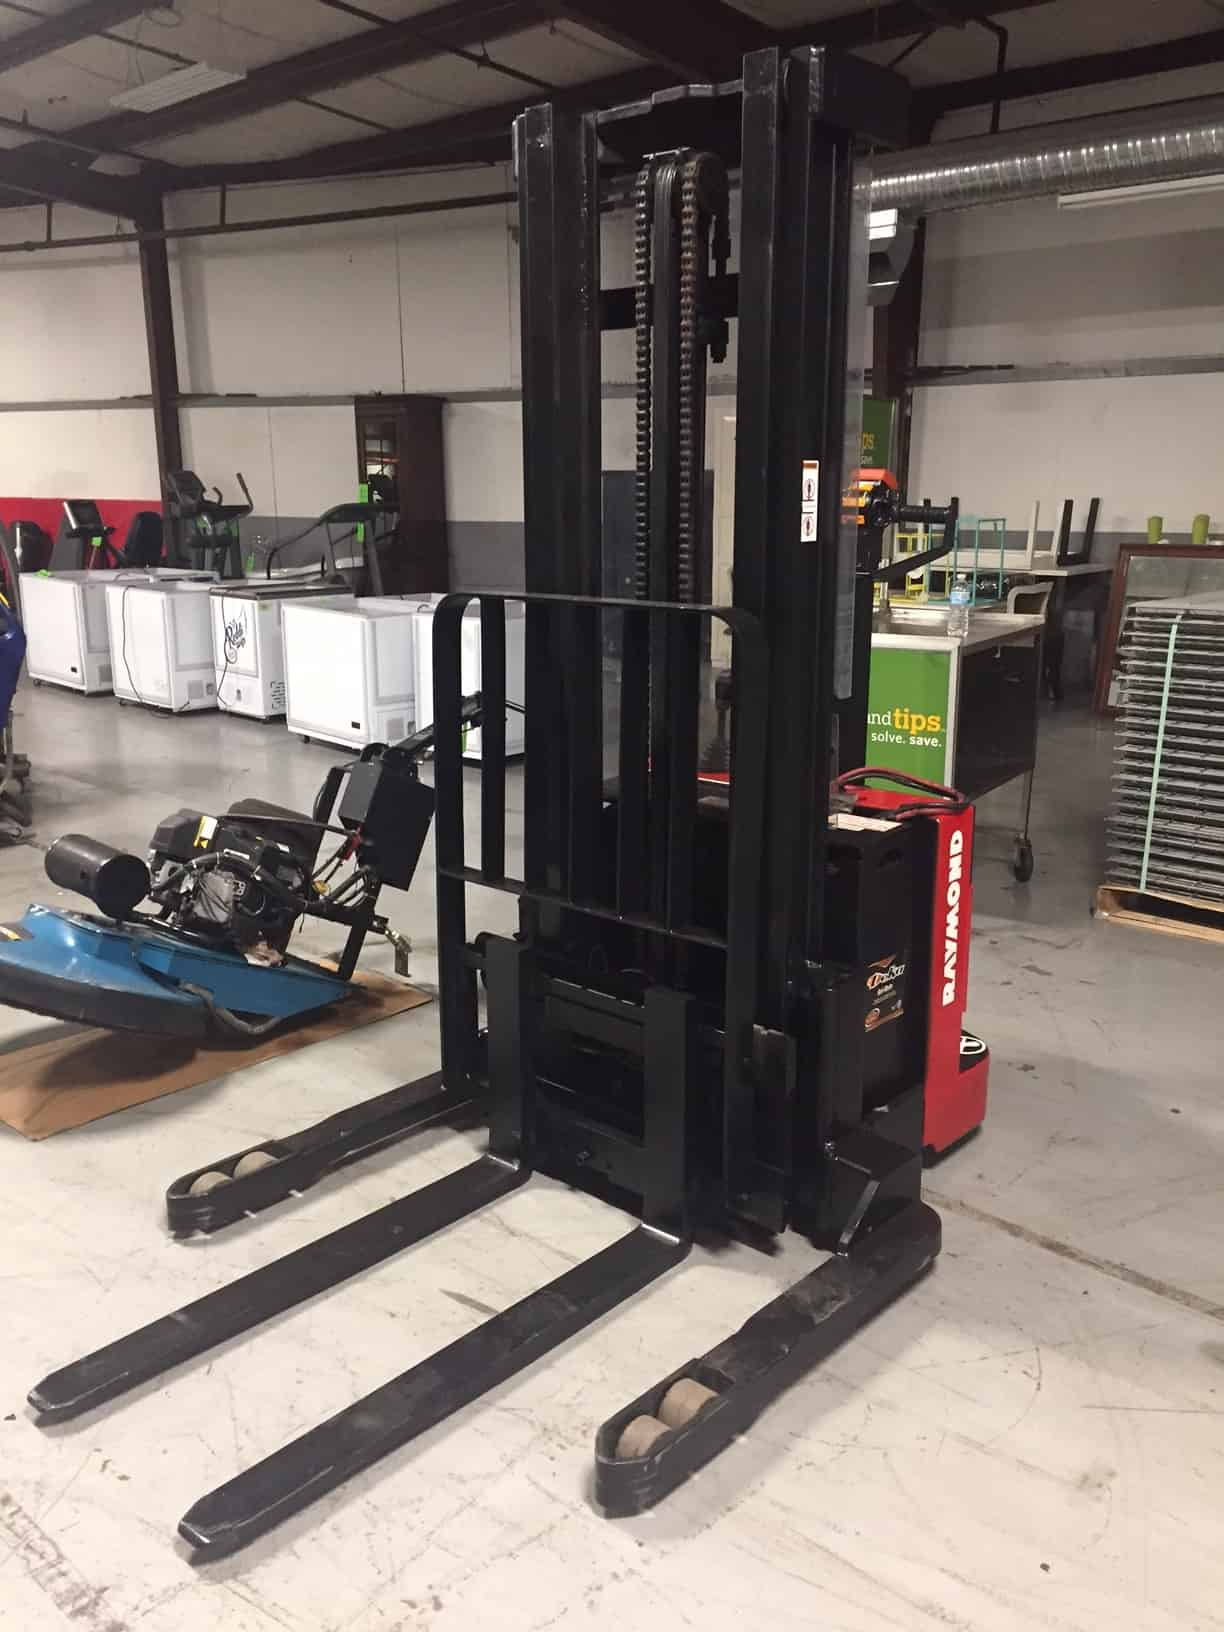 "Raymond 3,750 lb. Walk Behind Forklift, Walkie Stacker, Model RSS40, S/N RSS40-03-01418, Pallet Stacker, 24 V with Side Shift, 2-Stage 128"" H Lift, 5,223.3 Hours, Very Good Operating Condition (Located in Pittsburgh)"